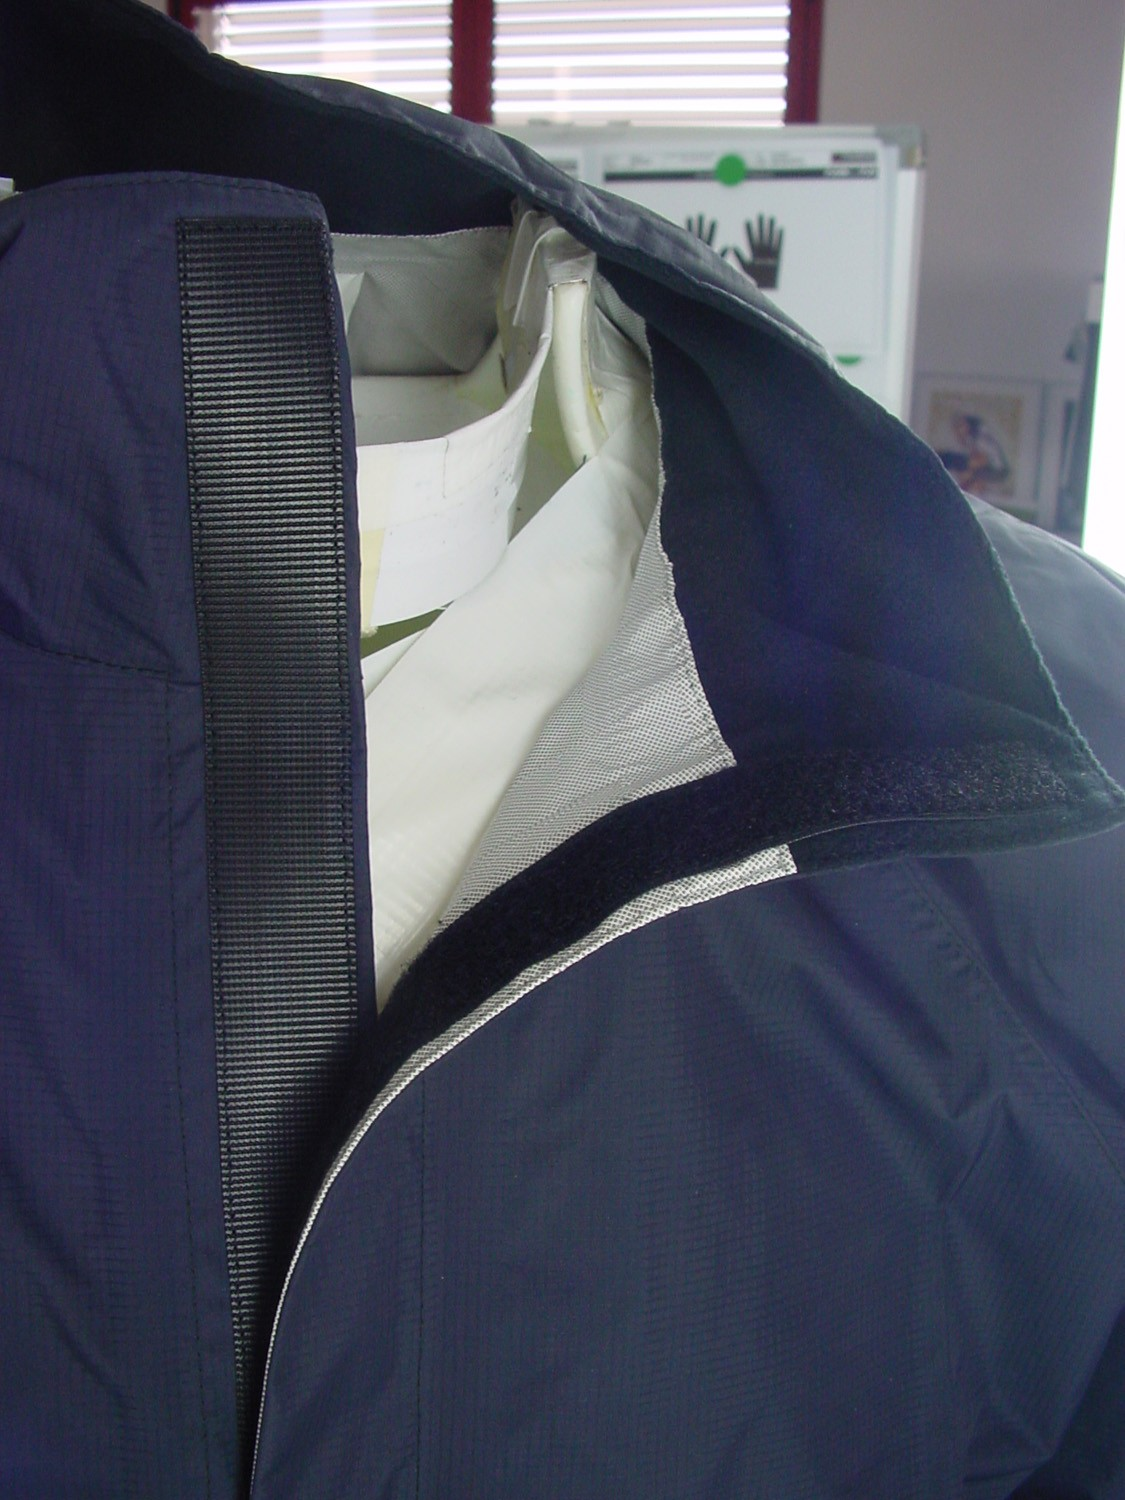 The full-Velcro front is said to be easier to put on – and take off – while you're on the bike